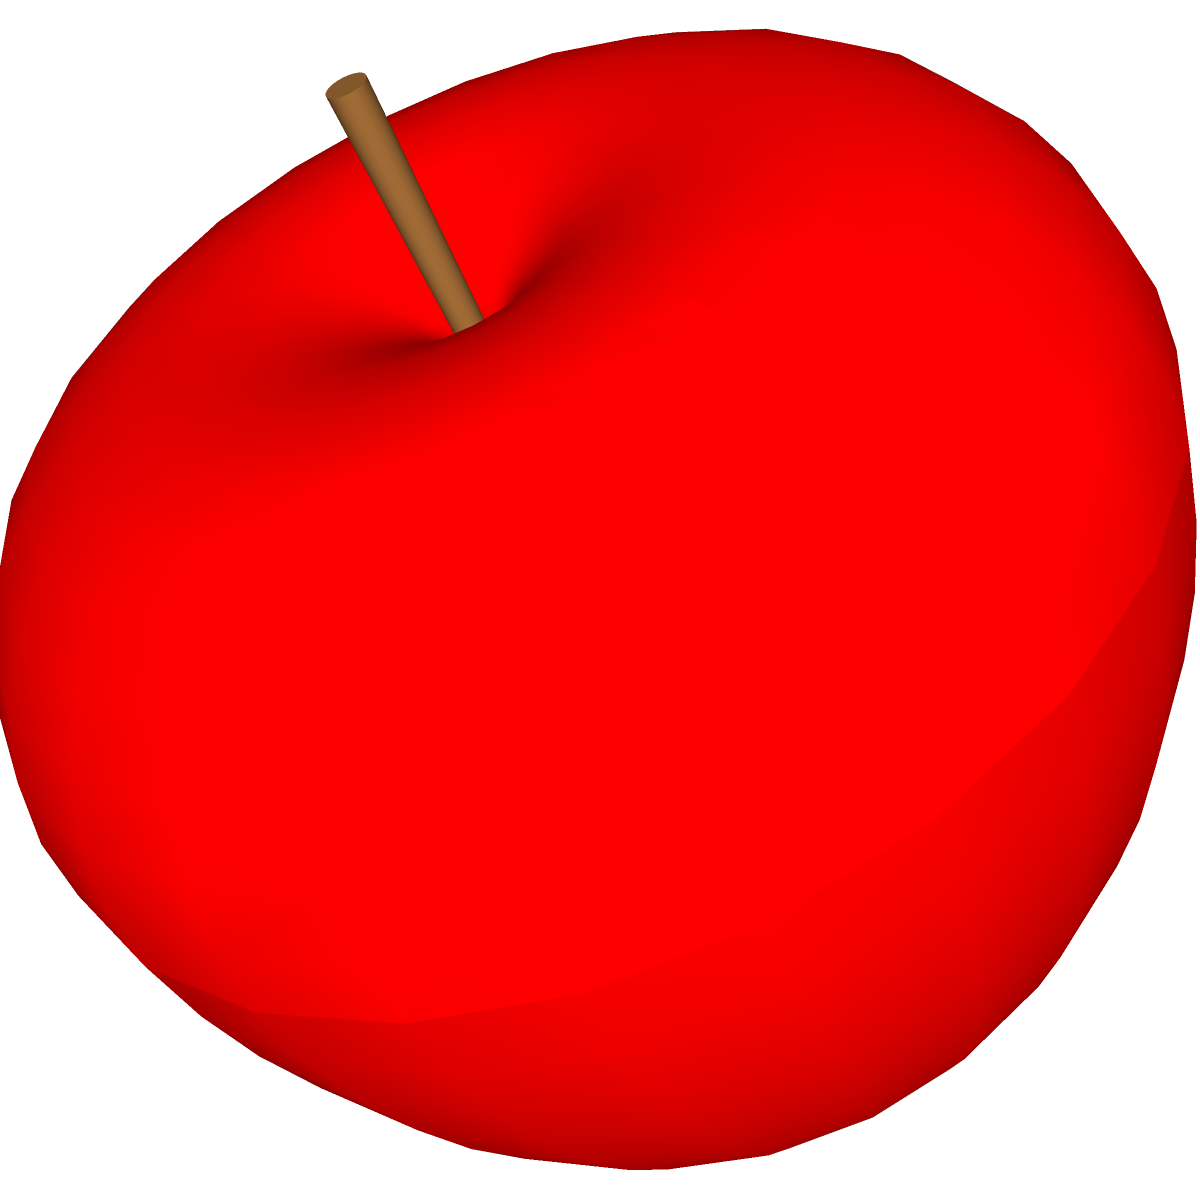 amazing apple pencil. Apples clipart animated